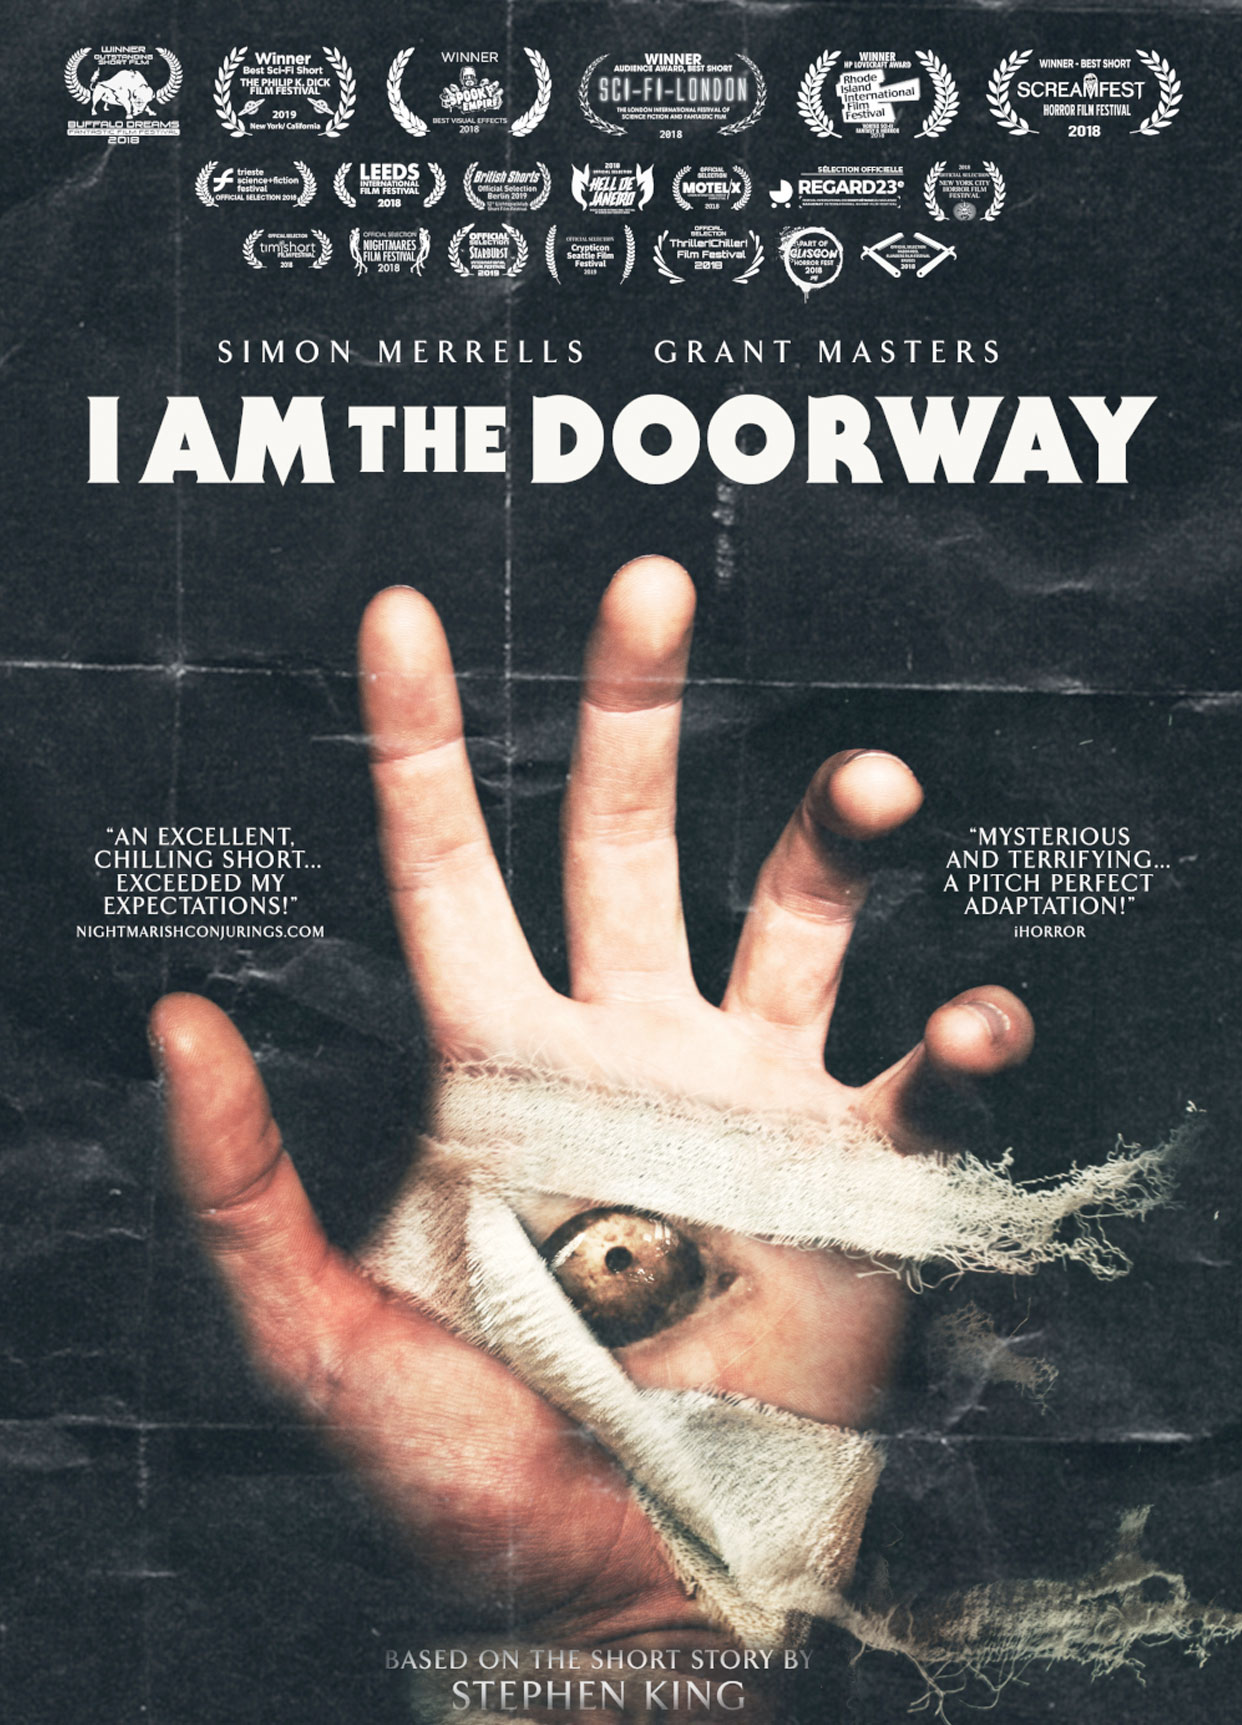 I-AM-THE-DOORWAY-Simon-Pearce